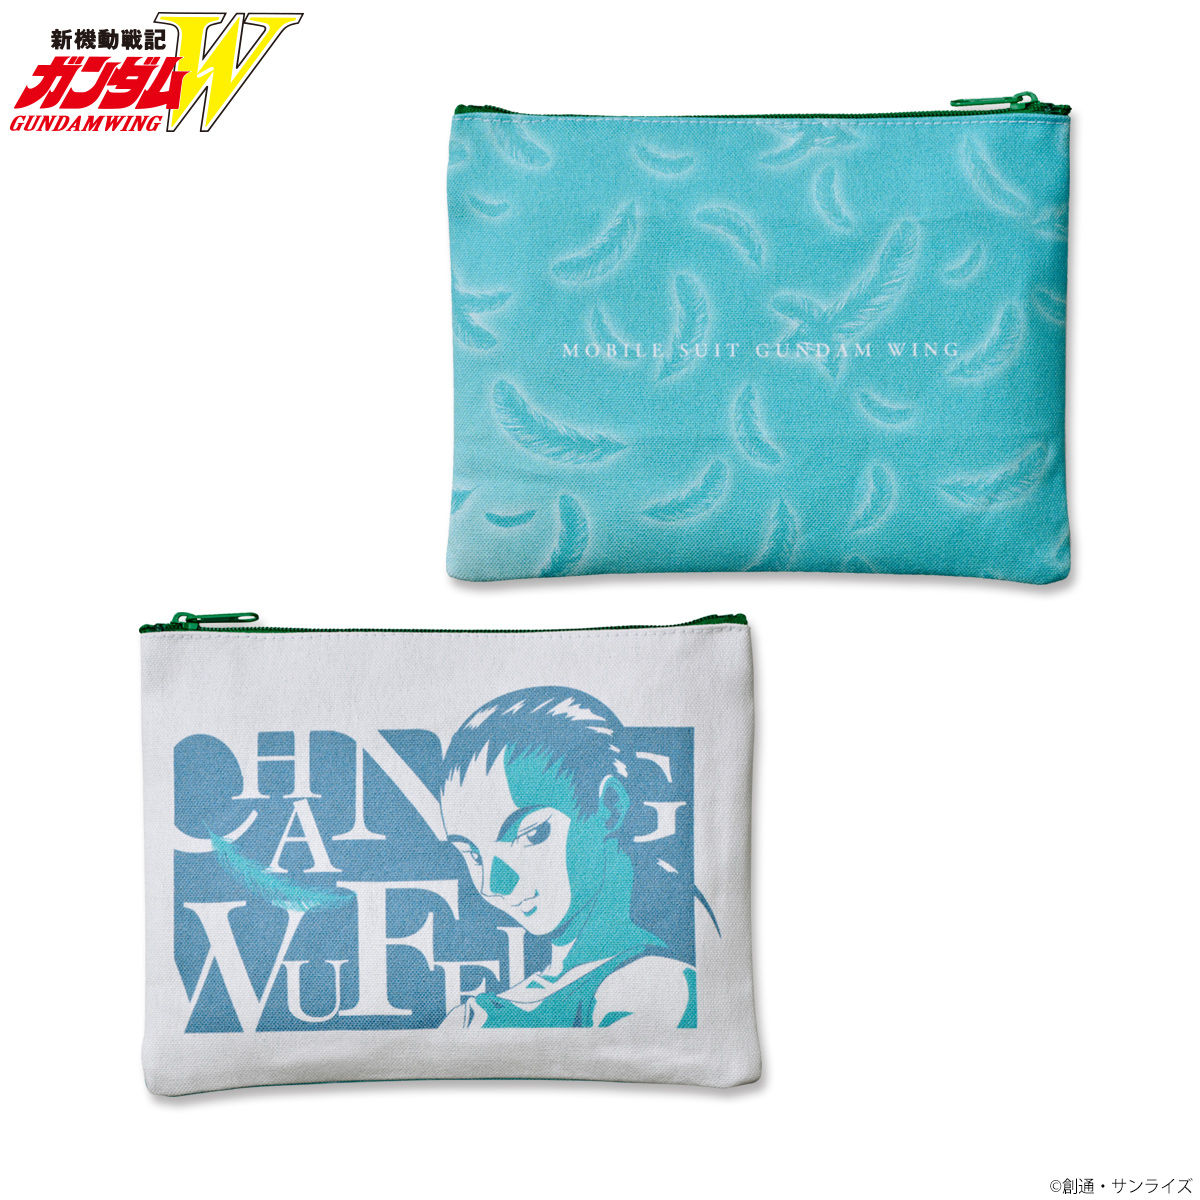 Mobile Suit Gundam Wing Tricolor-themed Pouch